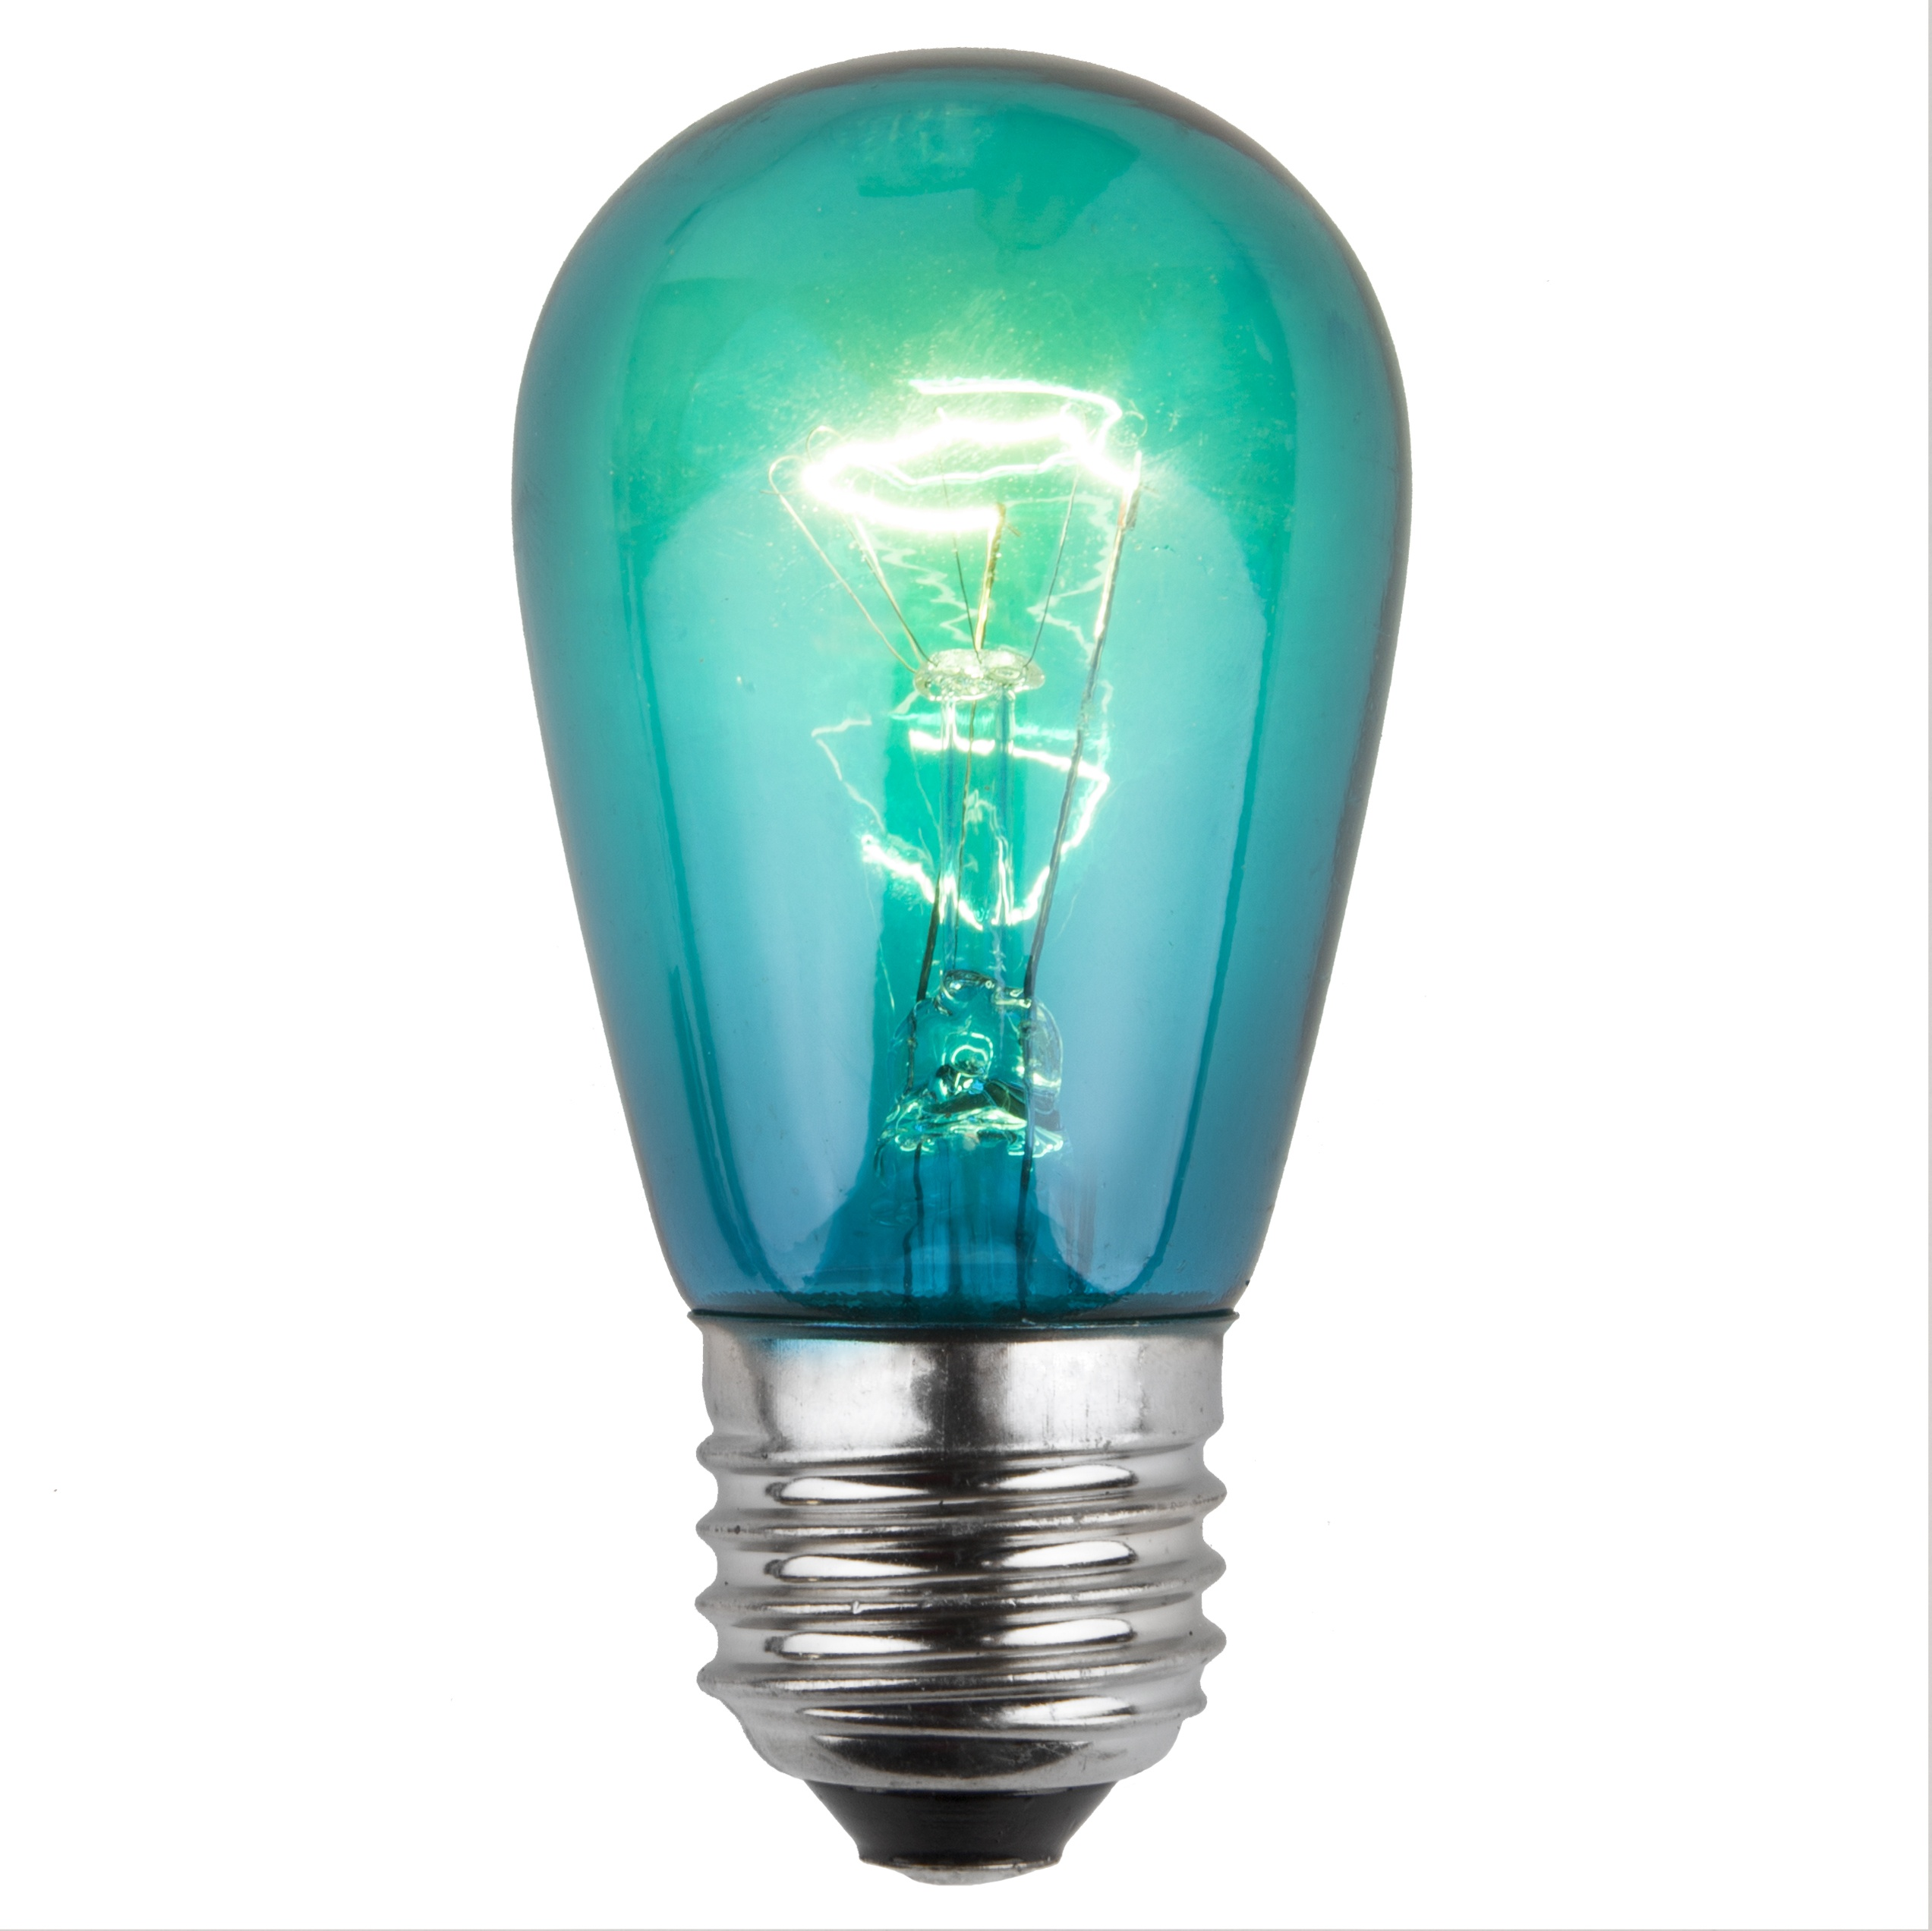 11S14 Transparent Teal Incandescent Sign Lamp